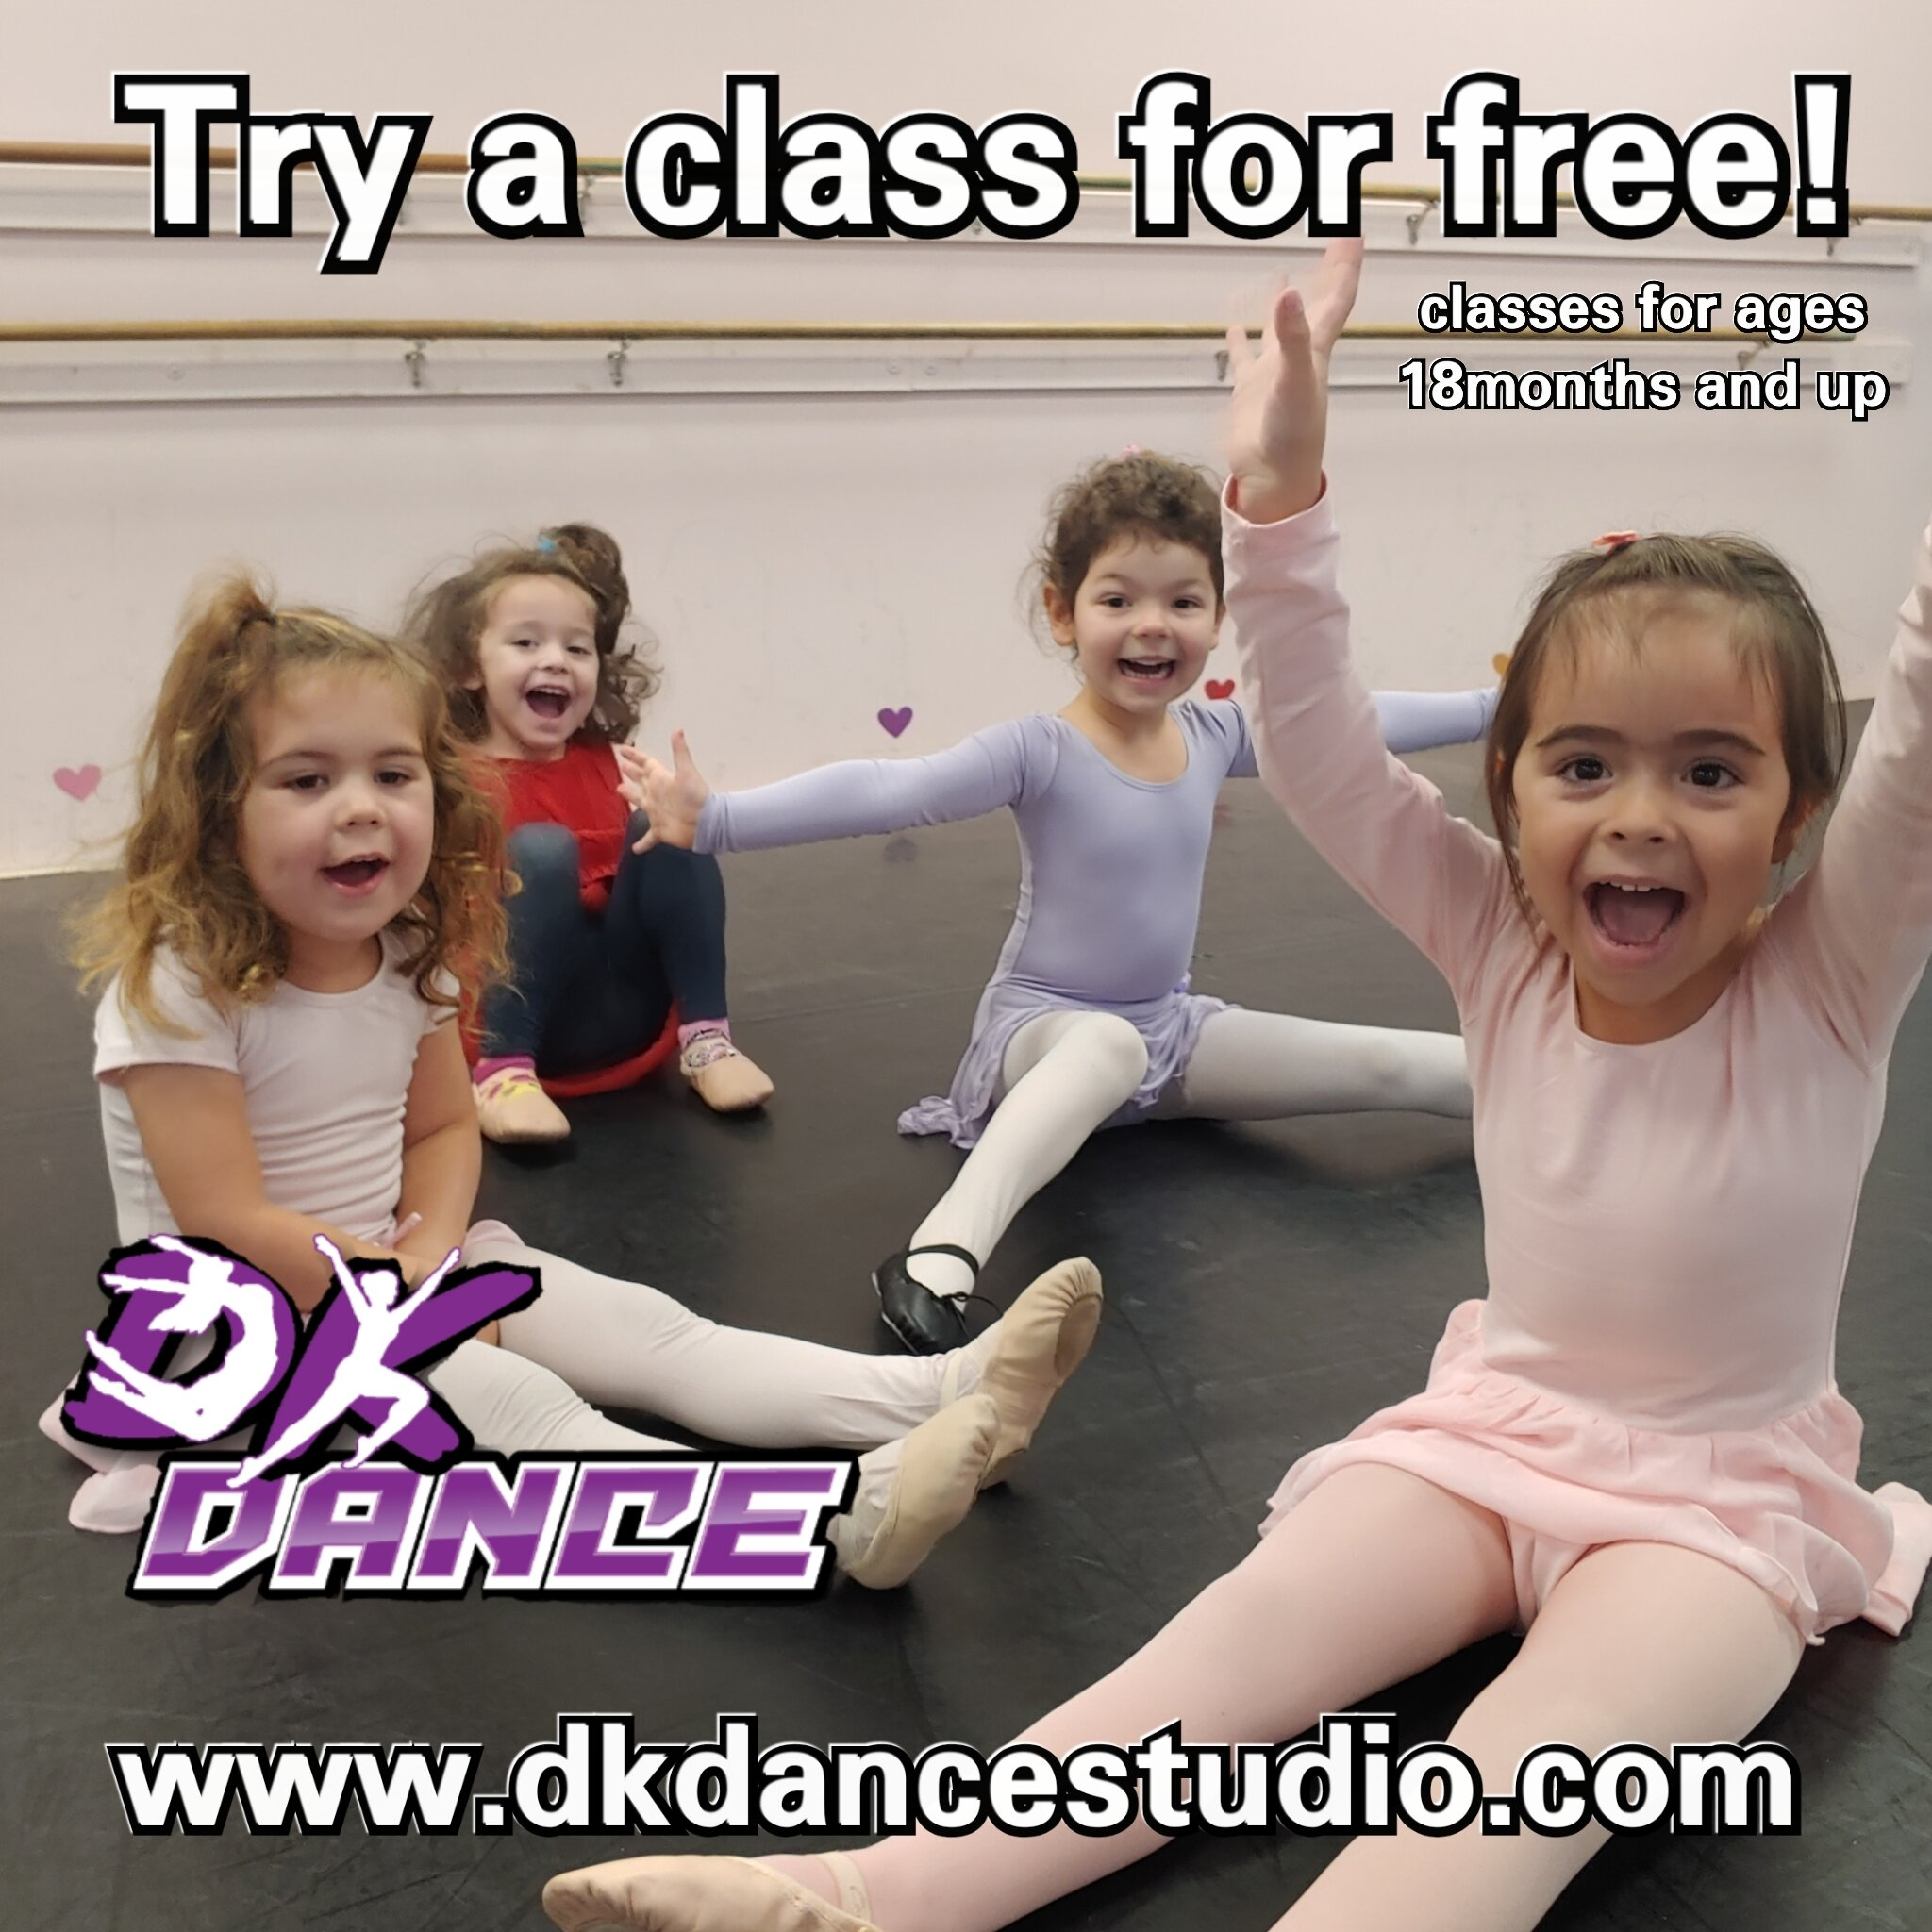 FREE TRIALS! - ANY AGE is a GREAT AGE to try DANCE!We offer classes for as young as 18 months through Adults!